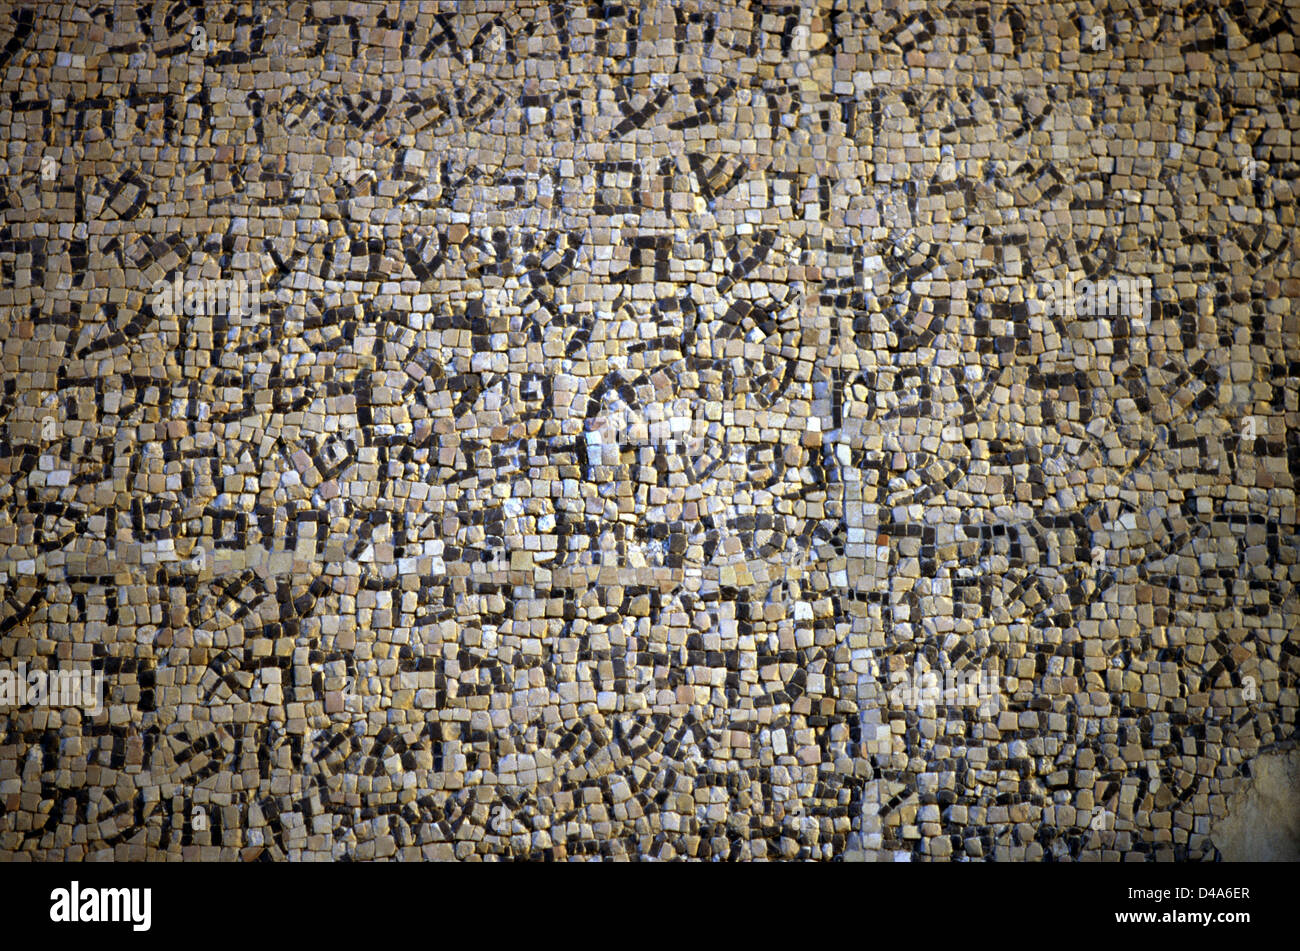 Ancient mosaic with Hebrew inscription displayed at the courtyard of Israel Museum in West Jerusalem Israel - Stock Image